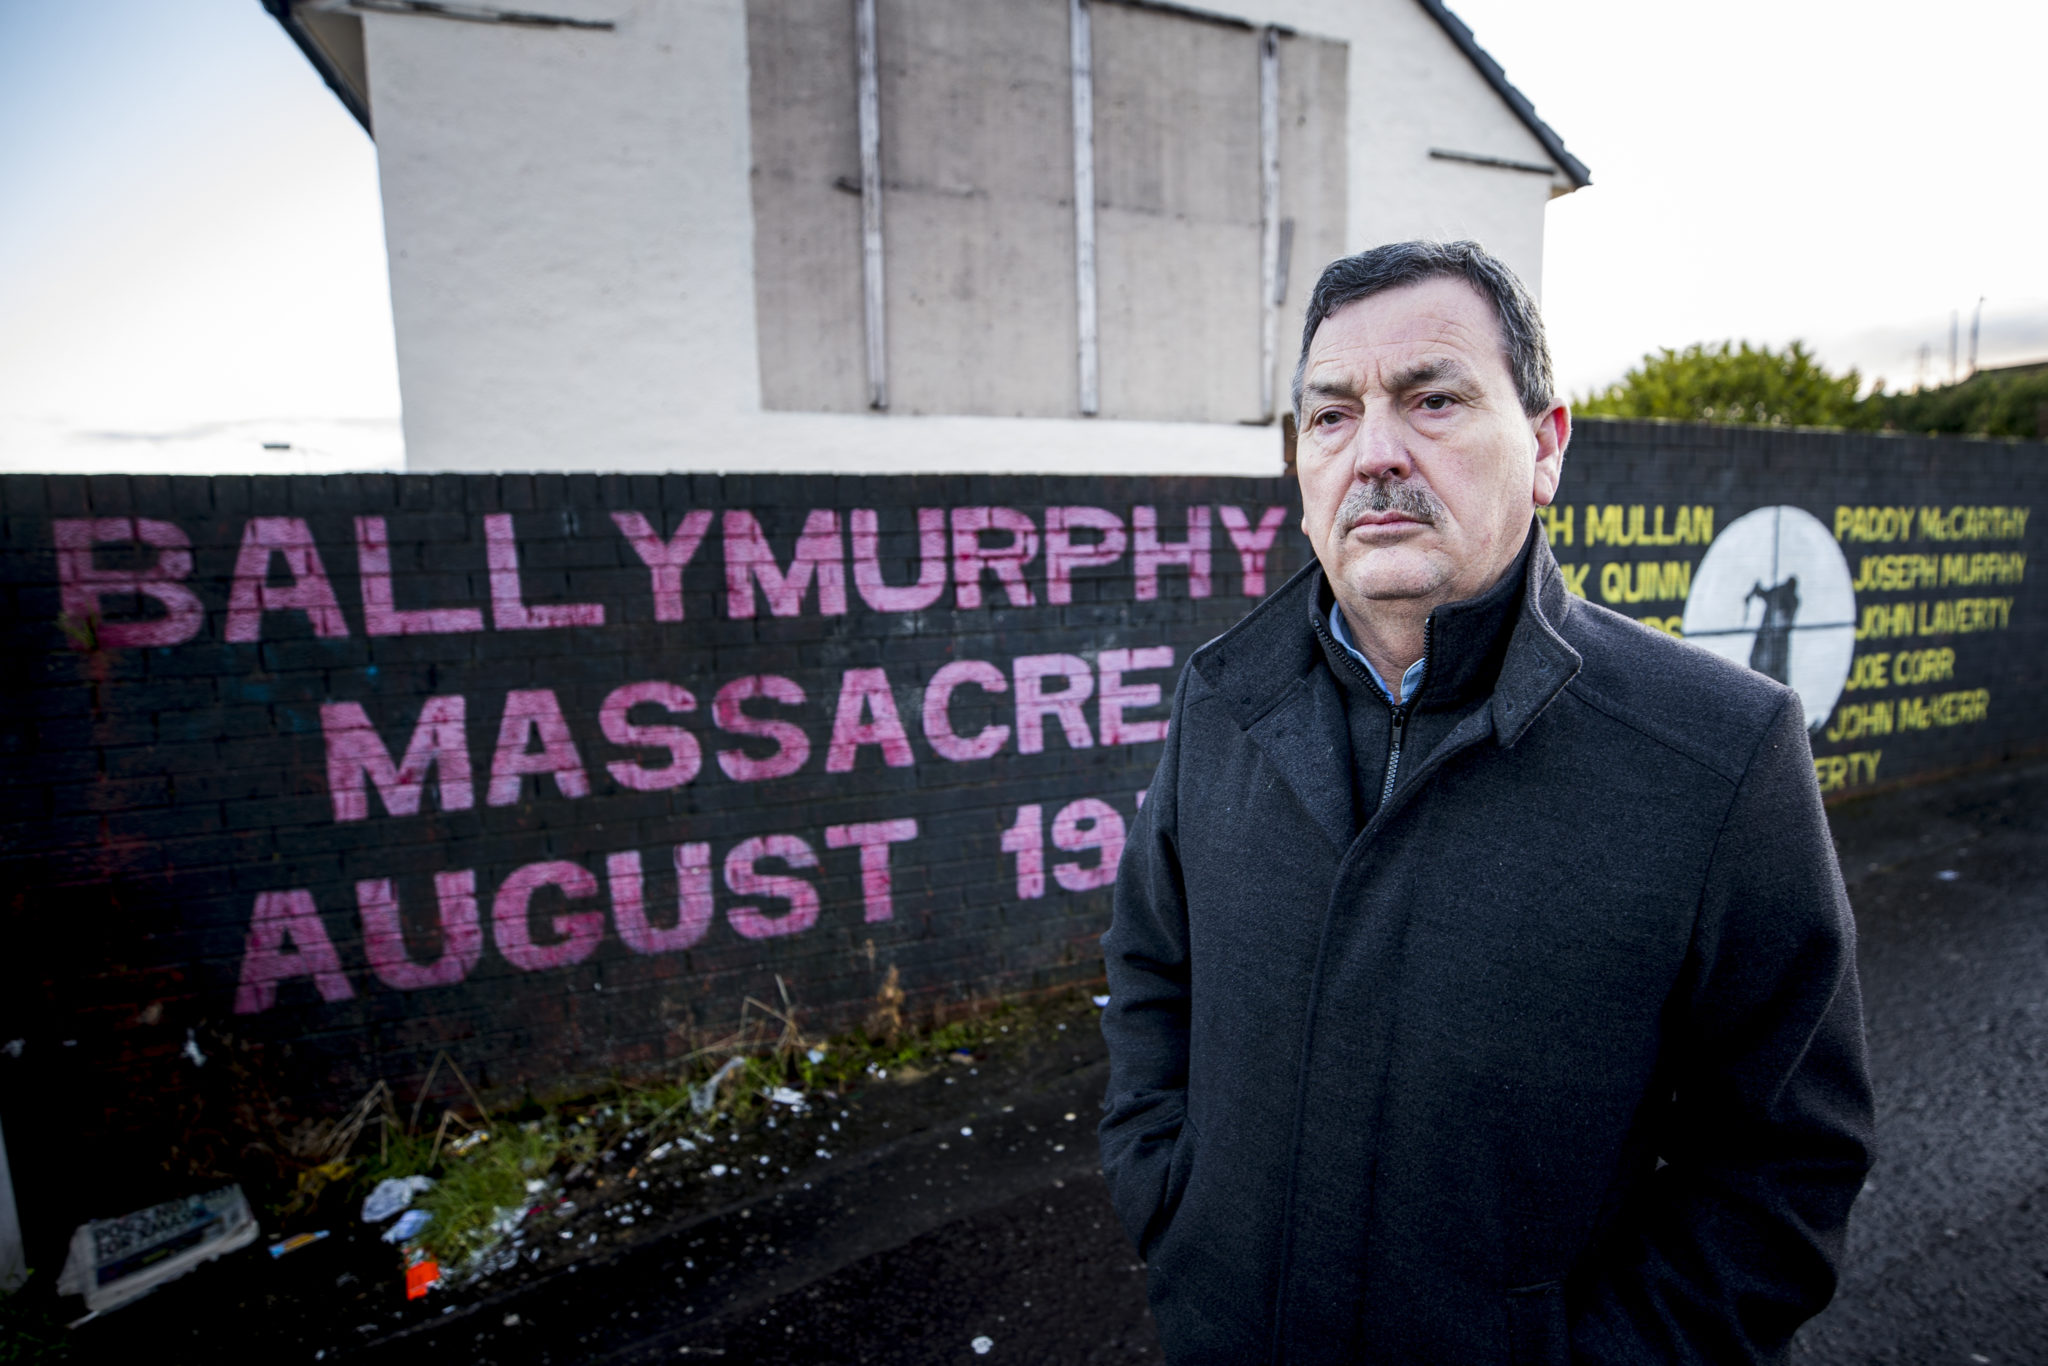 John Teggart, standing in the Ballymurphy area of west Belfast, where his father Daniel was murdered by the British Army.